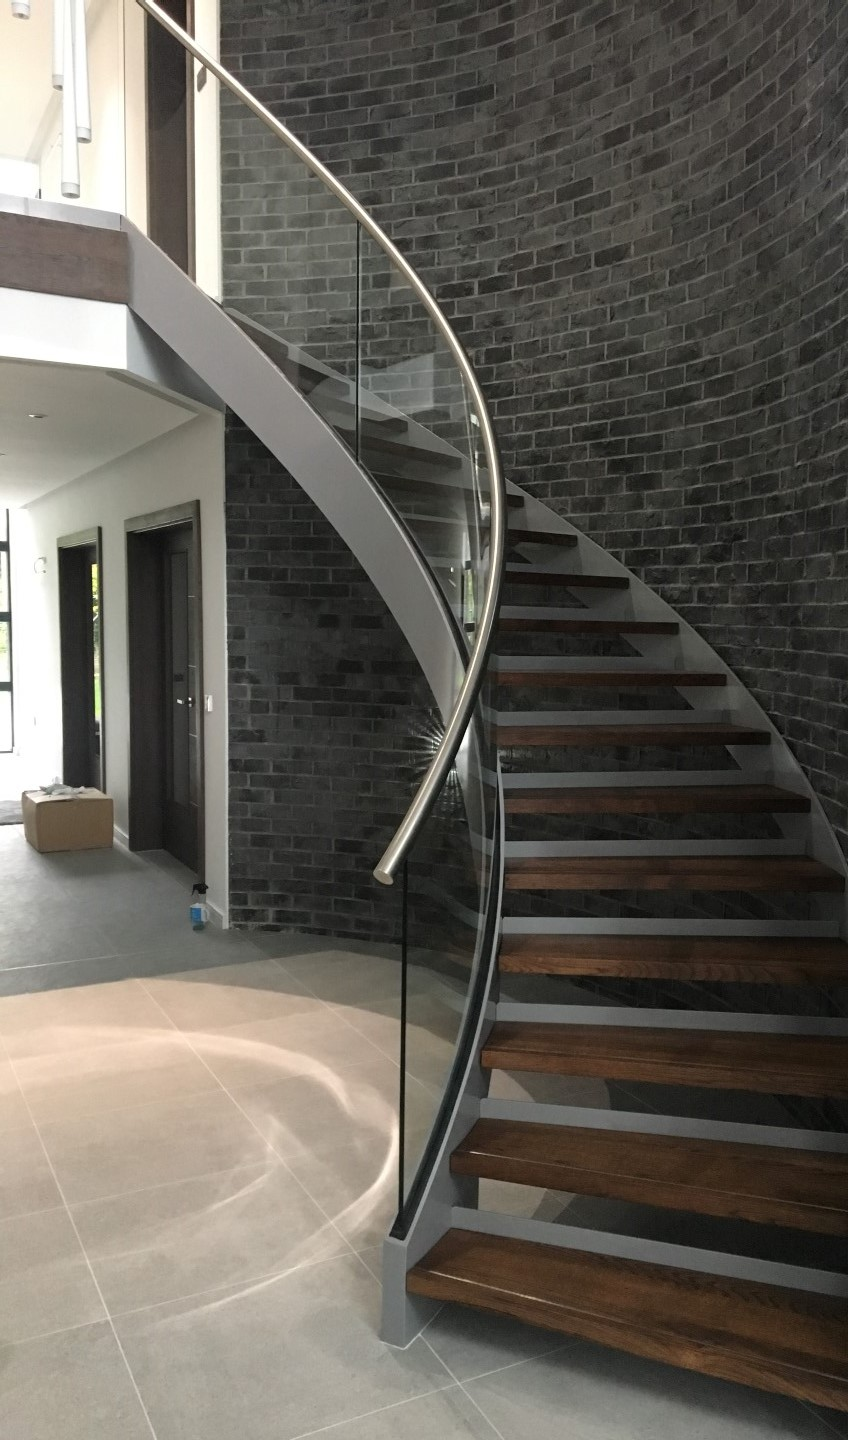 stunning bespoke helix with curved glass